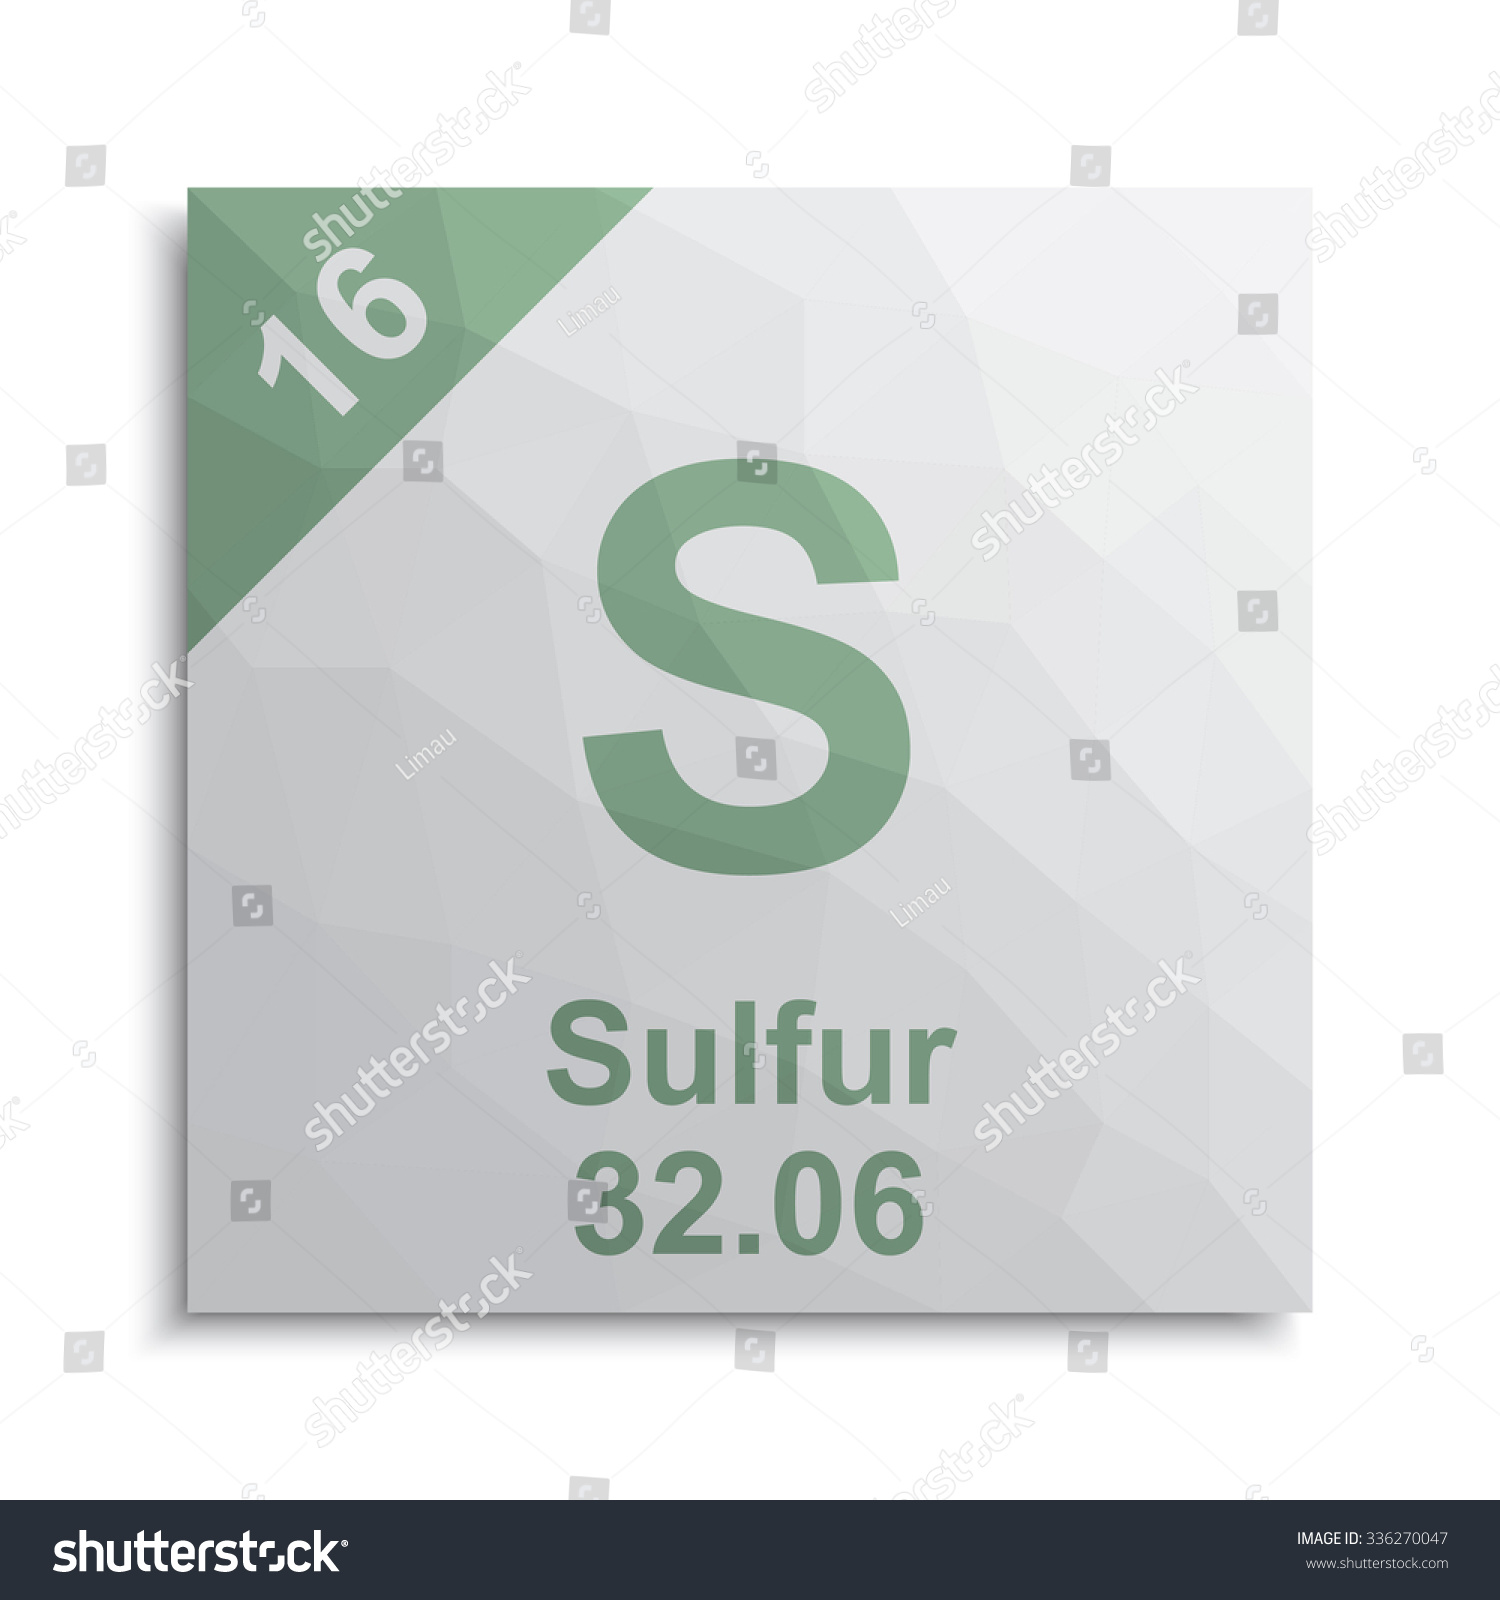 Sulfur element periodic table stock vector 336270047 shutterstock sulfur element periodic table buycottarizona Image collections